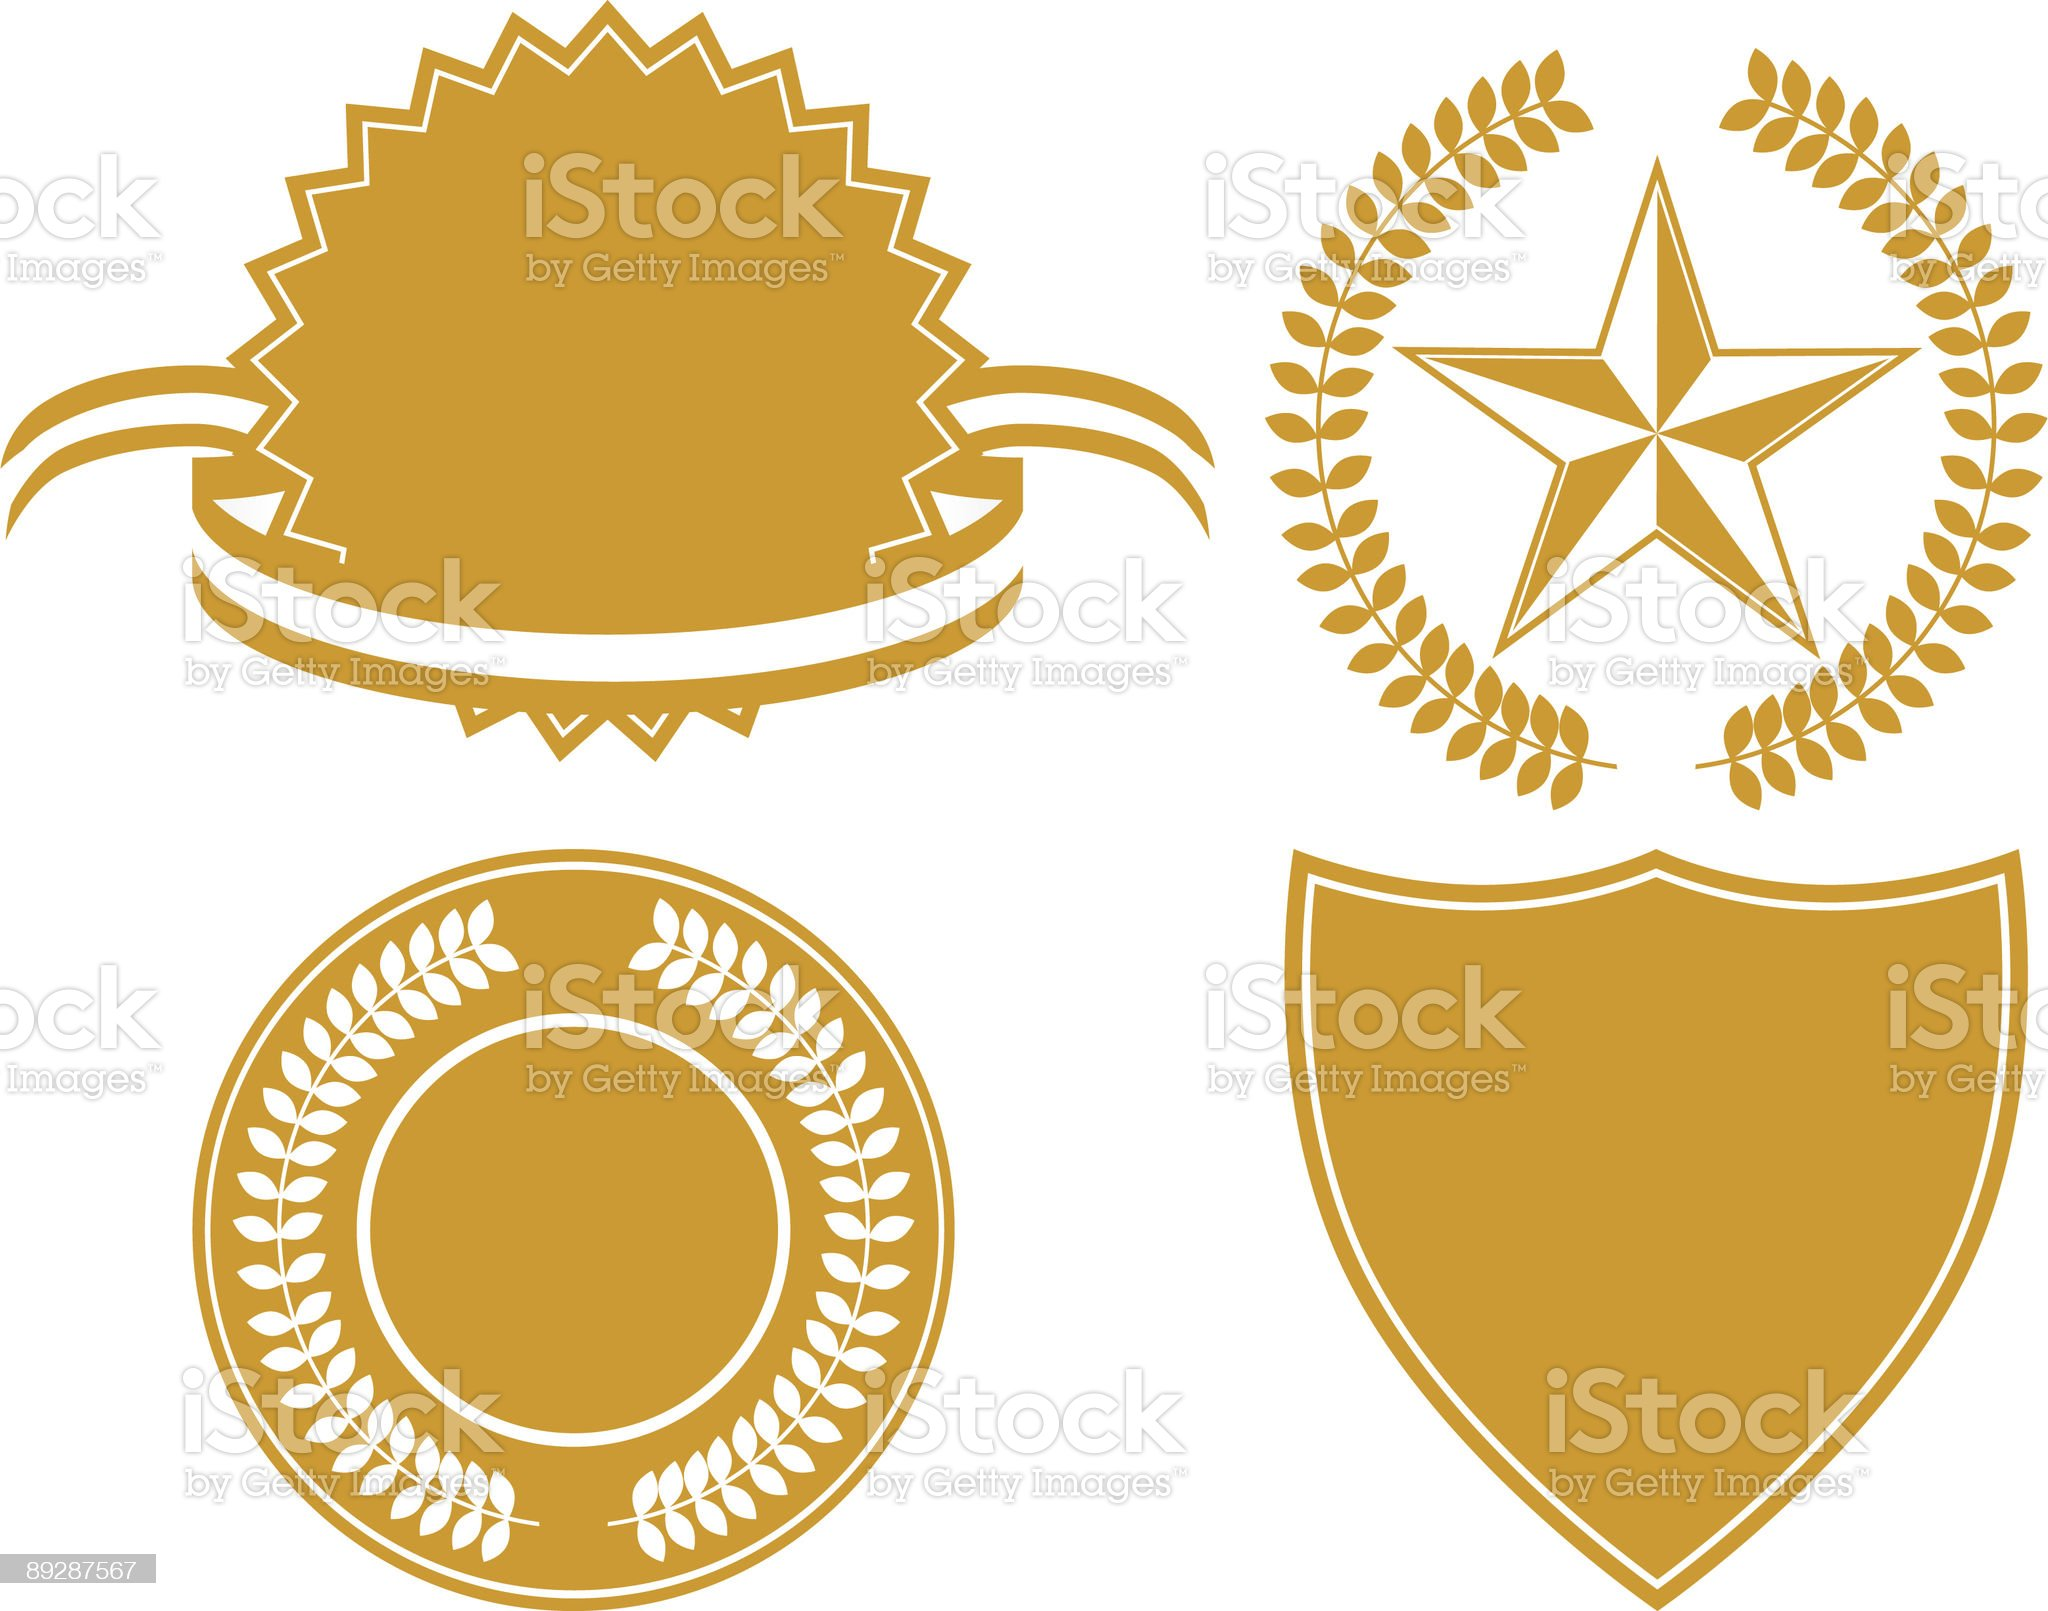 A set of four golden certificate icons on white background royalty-free stock vector art